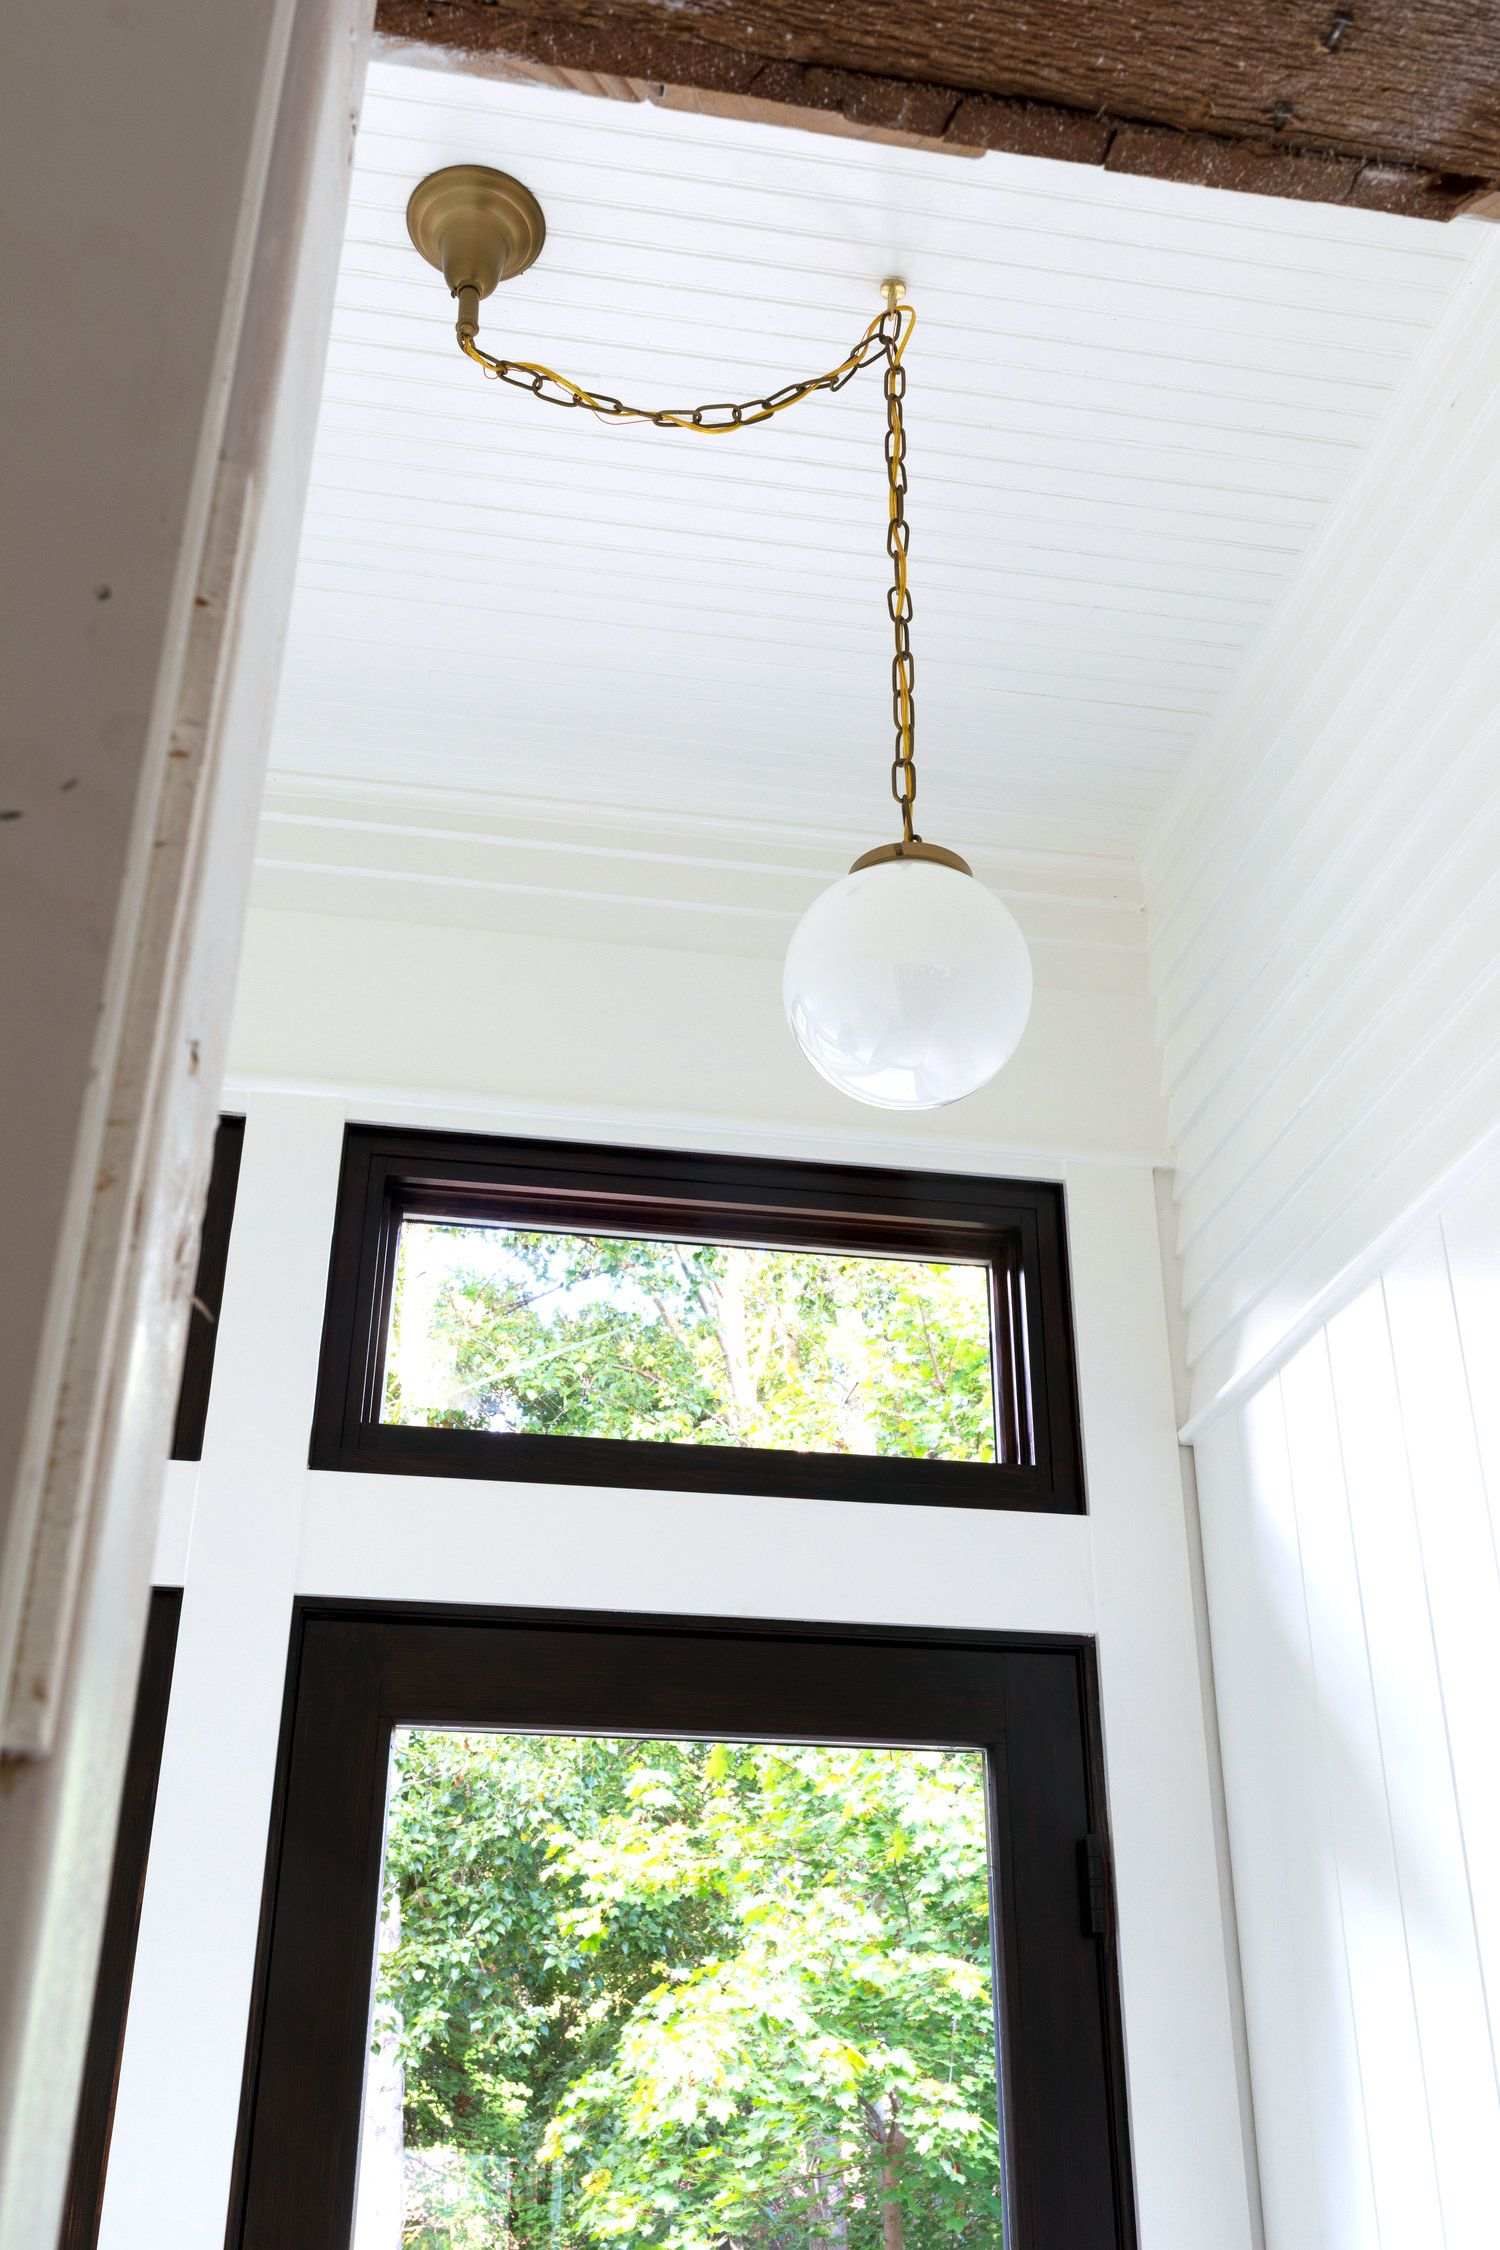 How To Center An Off Center Ceiling Light Without Moving